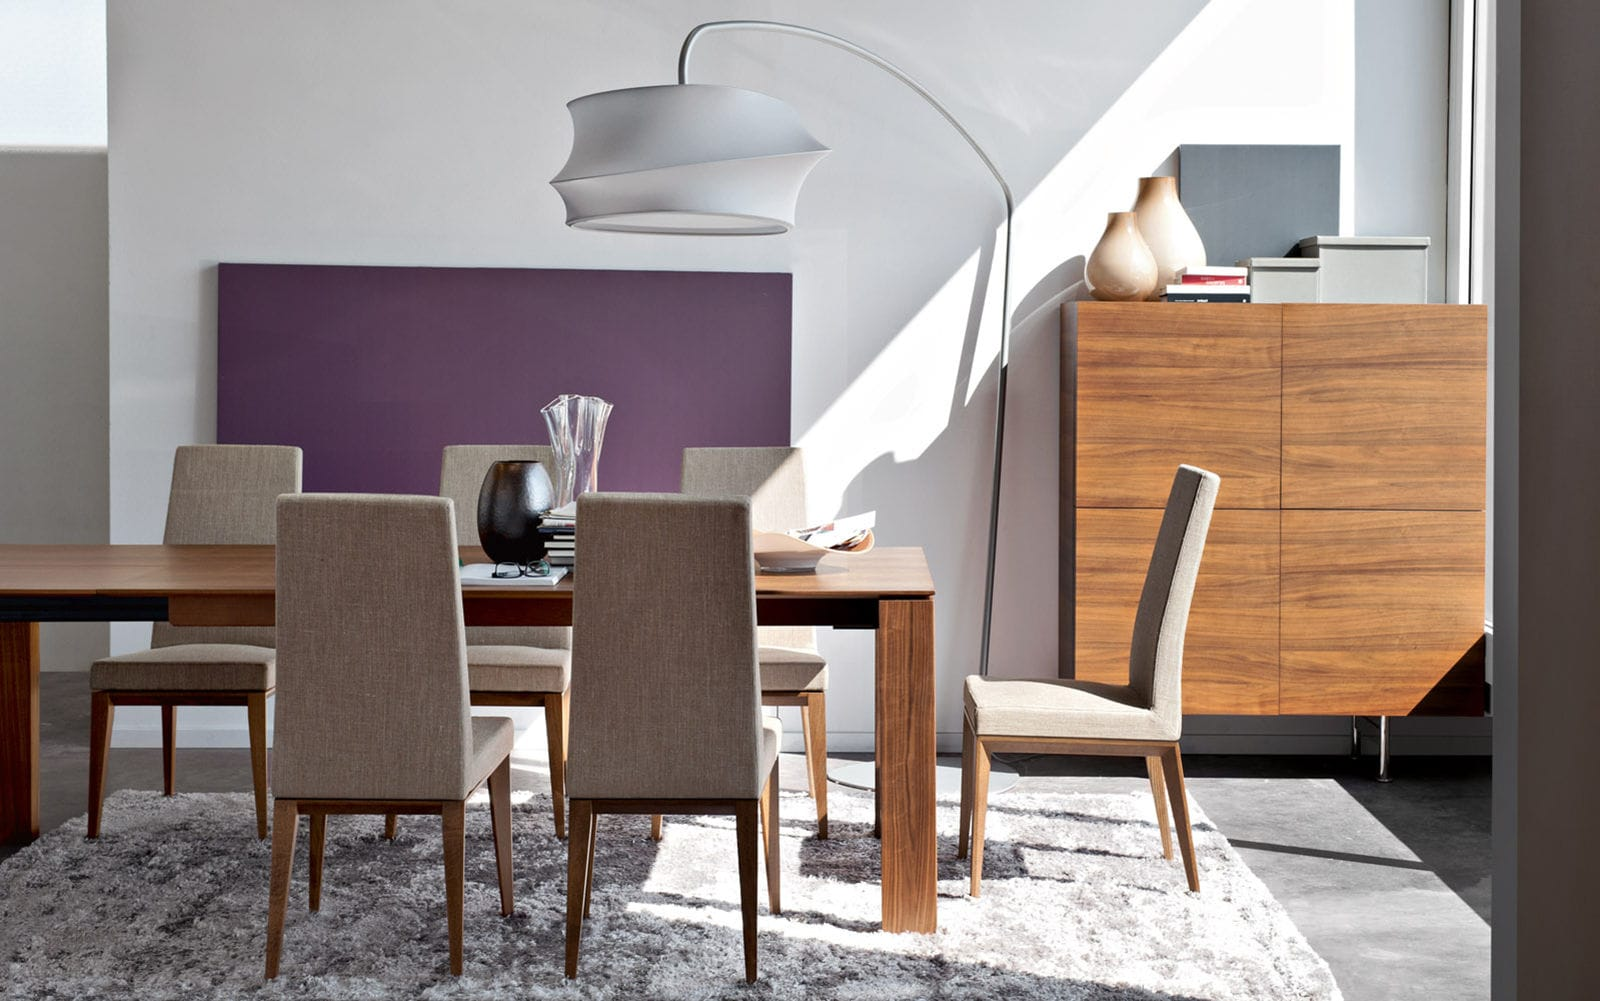 floor standing dining table lamp. floor-standing lamp / contemporary fabric steel cygnus by studio 28 calligaris floor standing dining table d